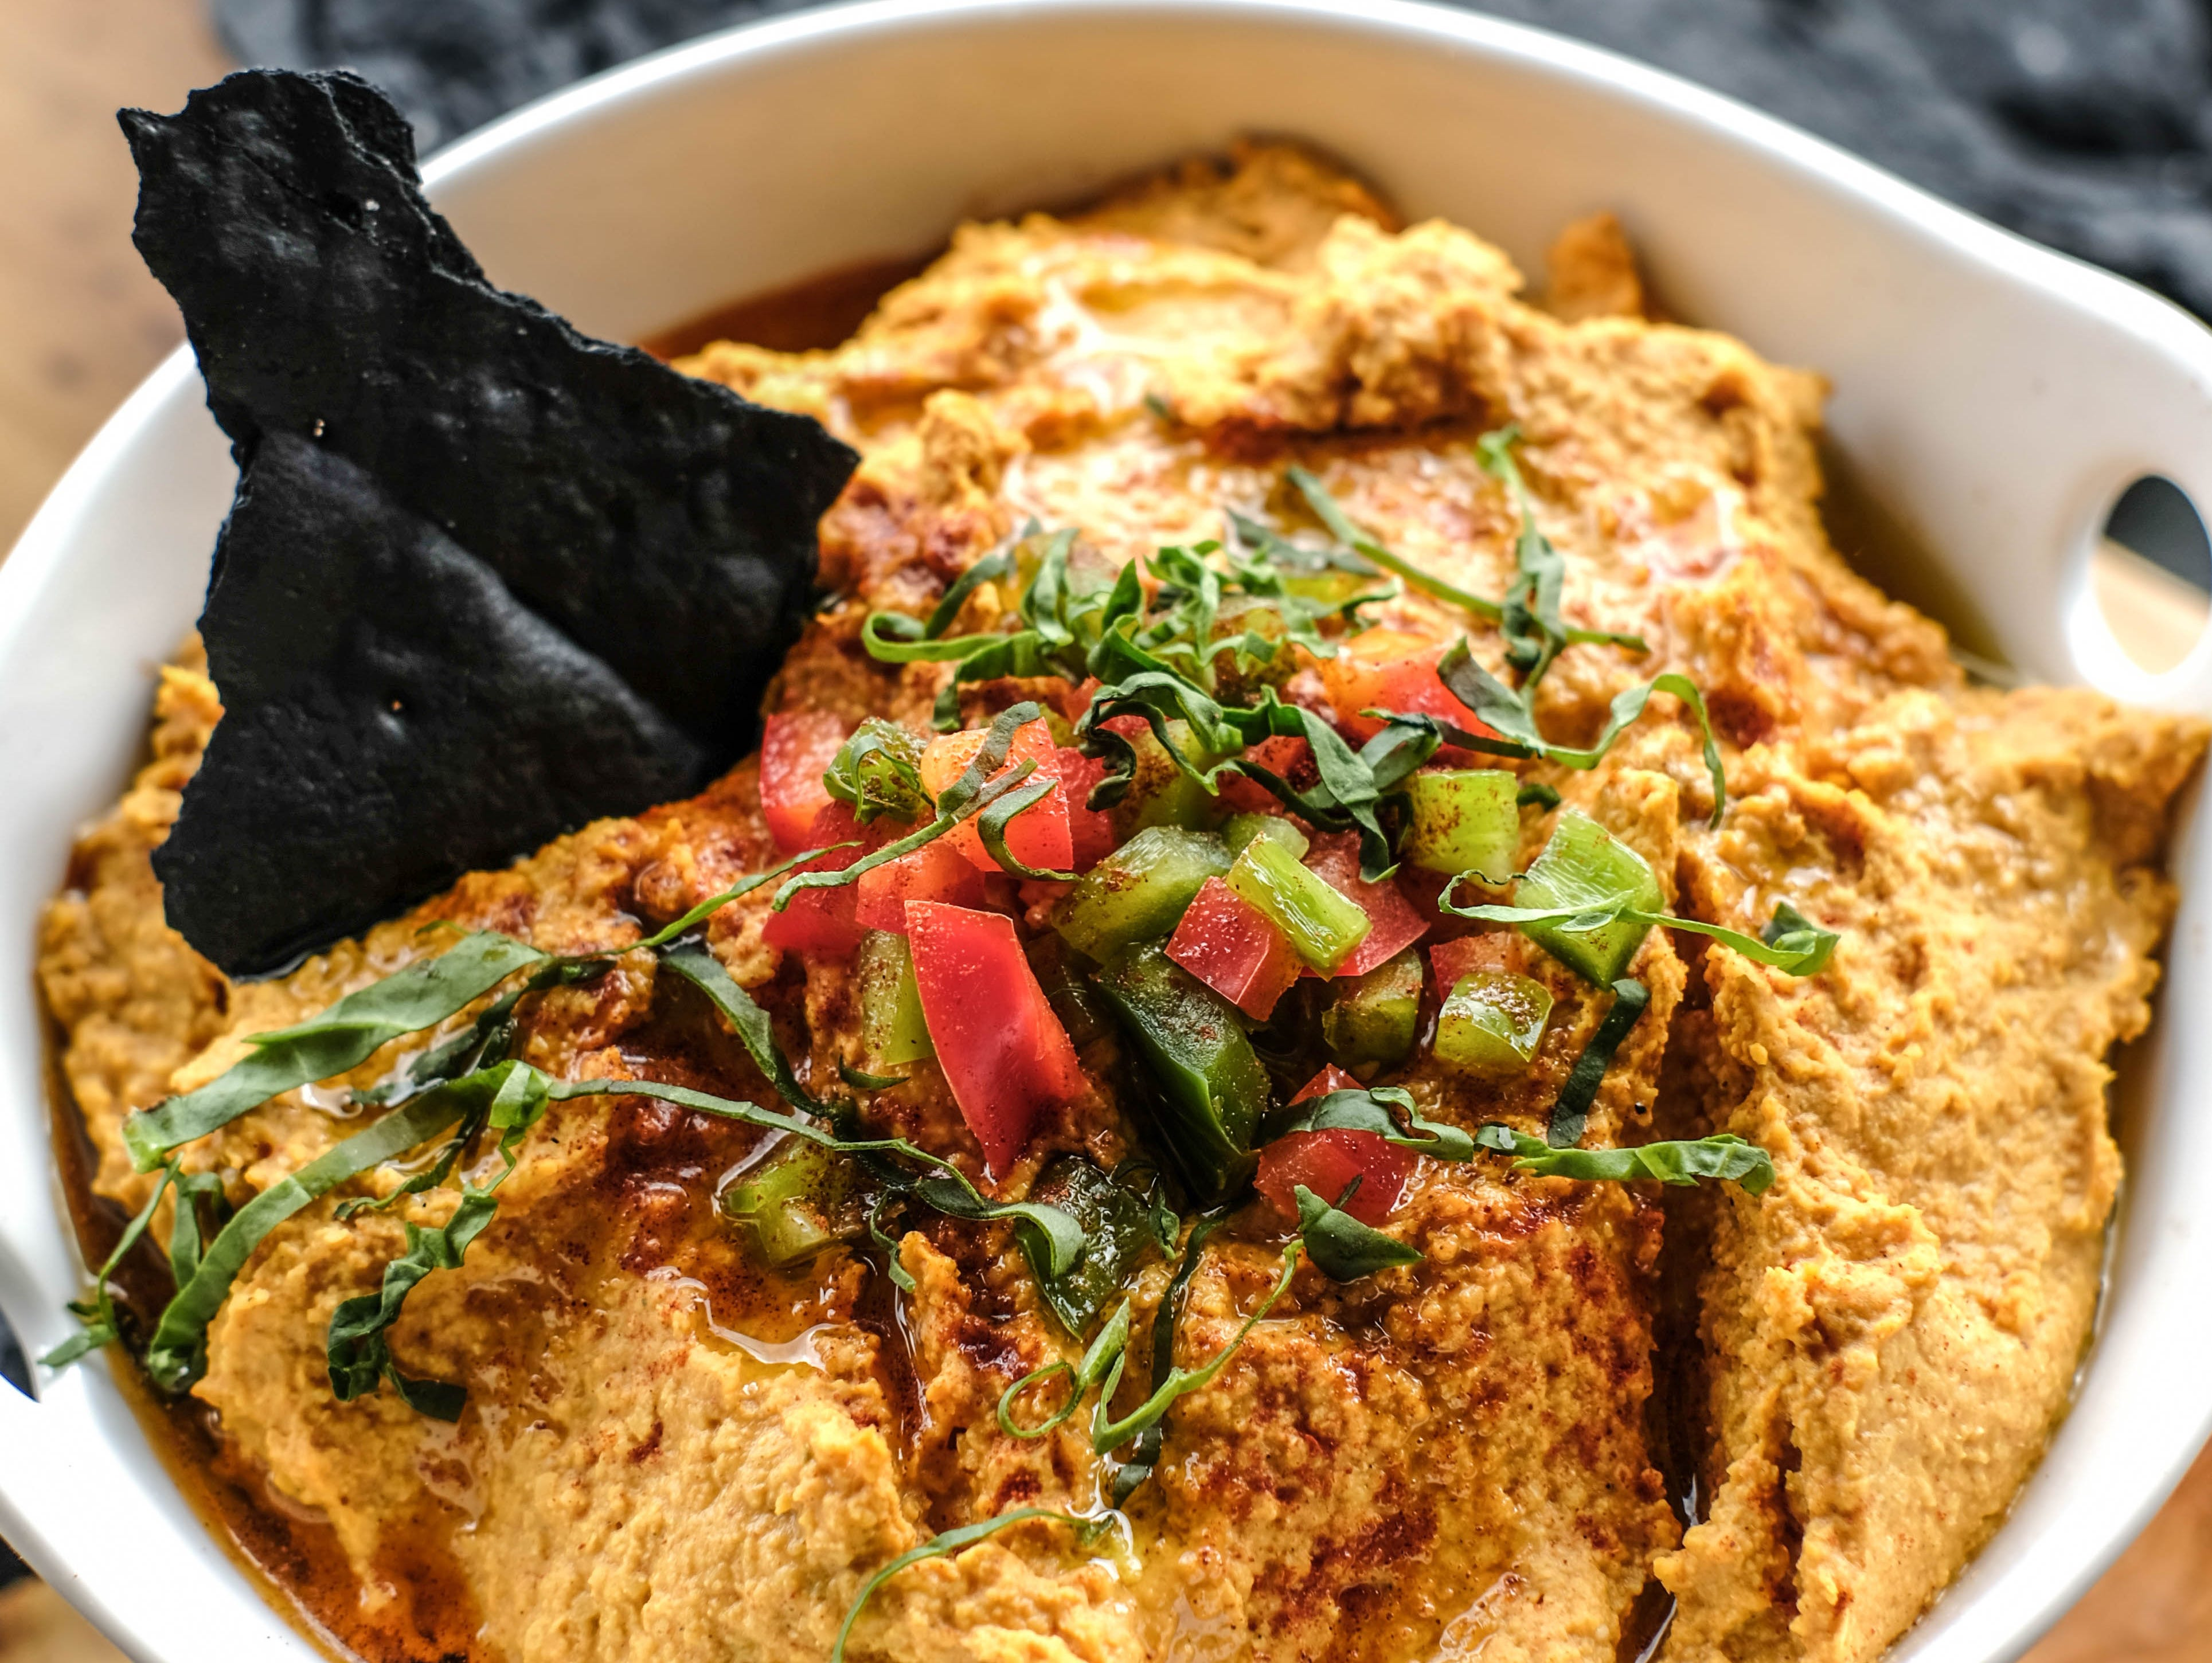 Check out this delicious hummus recipe by Taste of the NFL and Chef Mo Hassan.